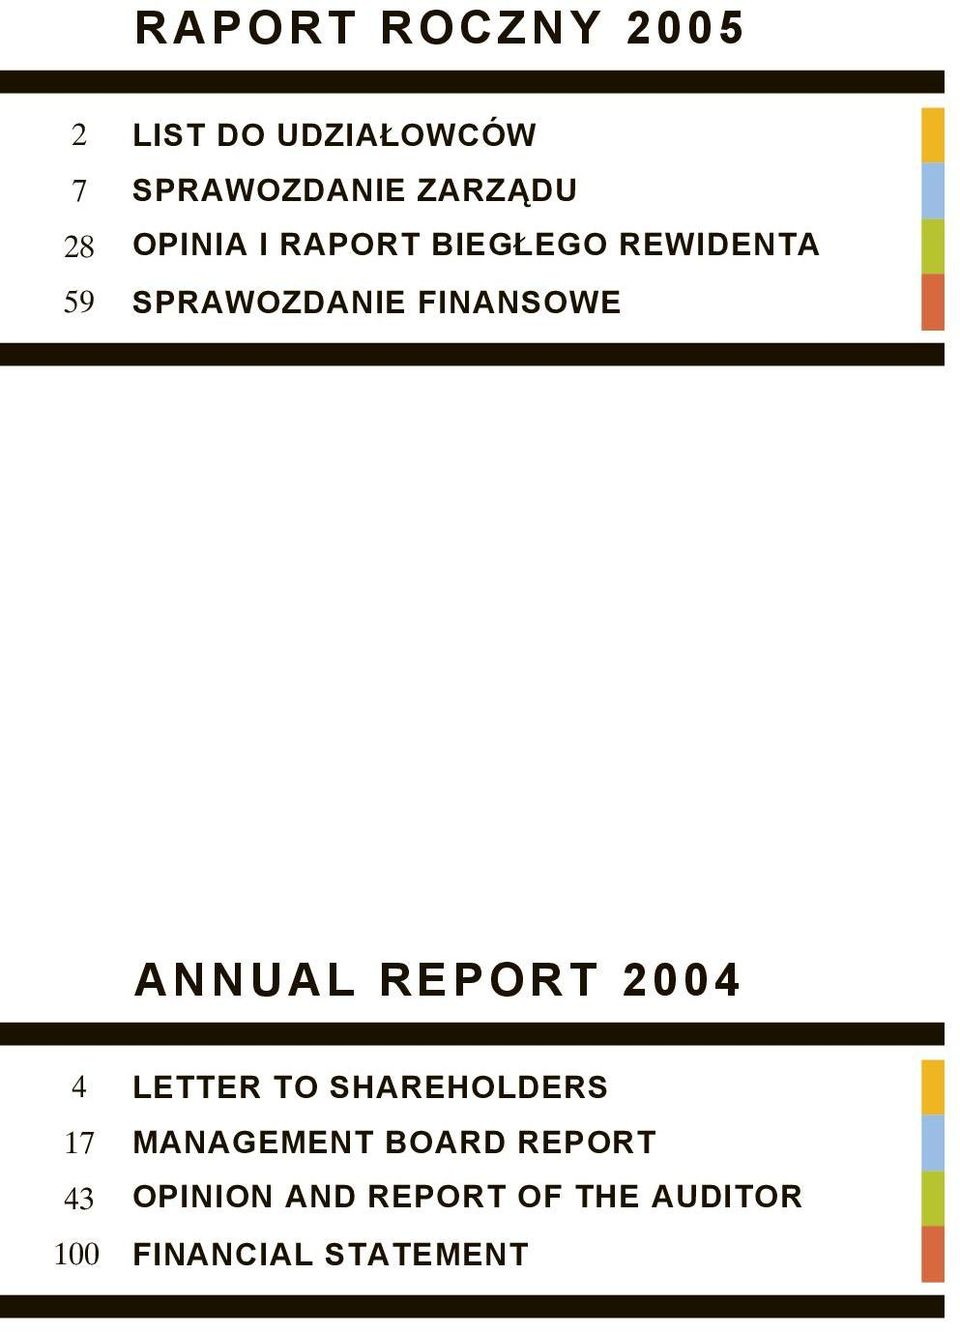 ANNUAL REPORT 2004 LETTER TO SHAREHOLDERS MANAGEMENT BOARD